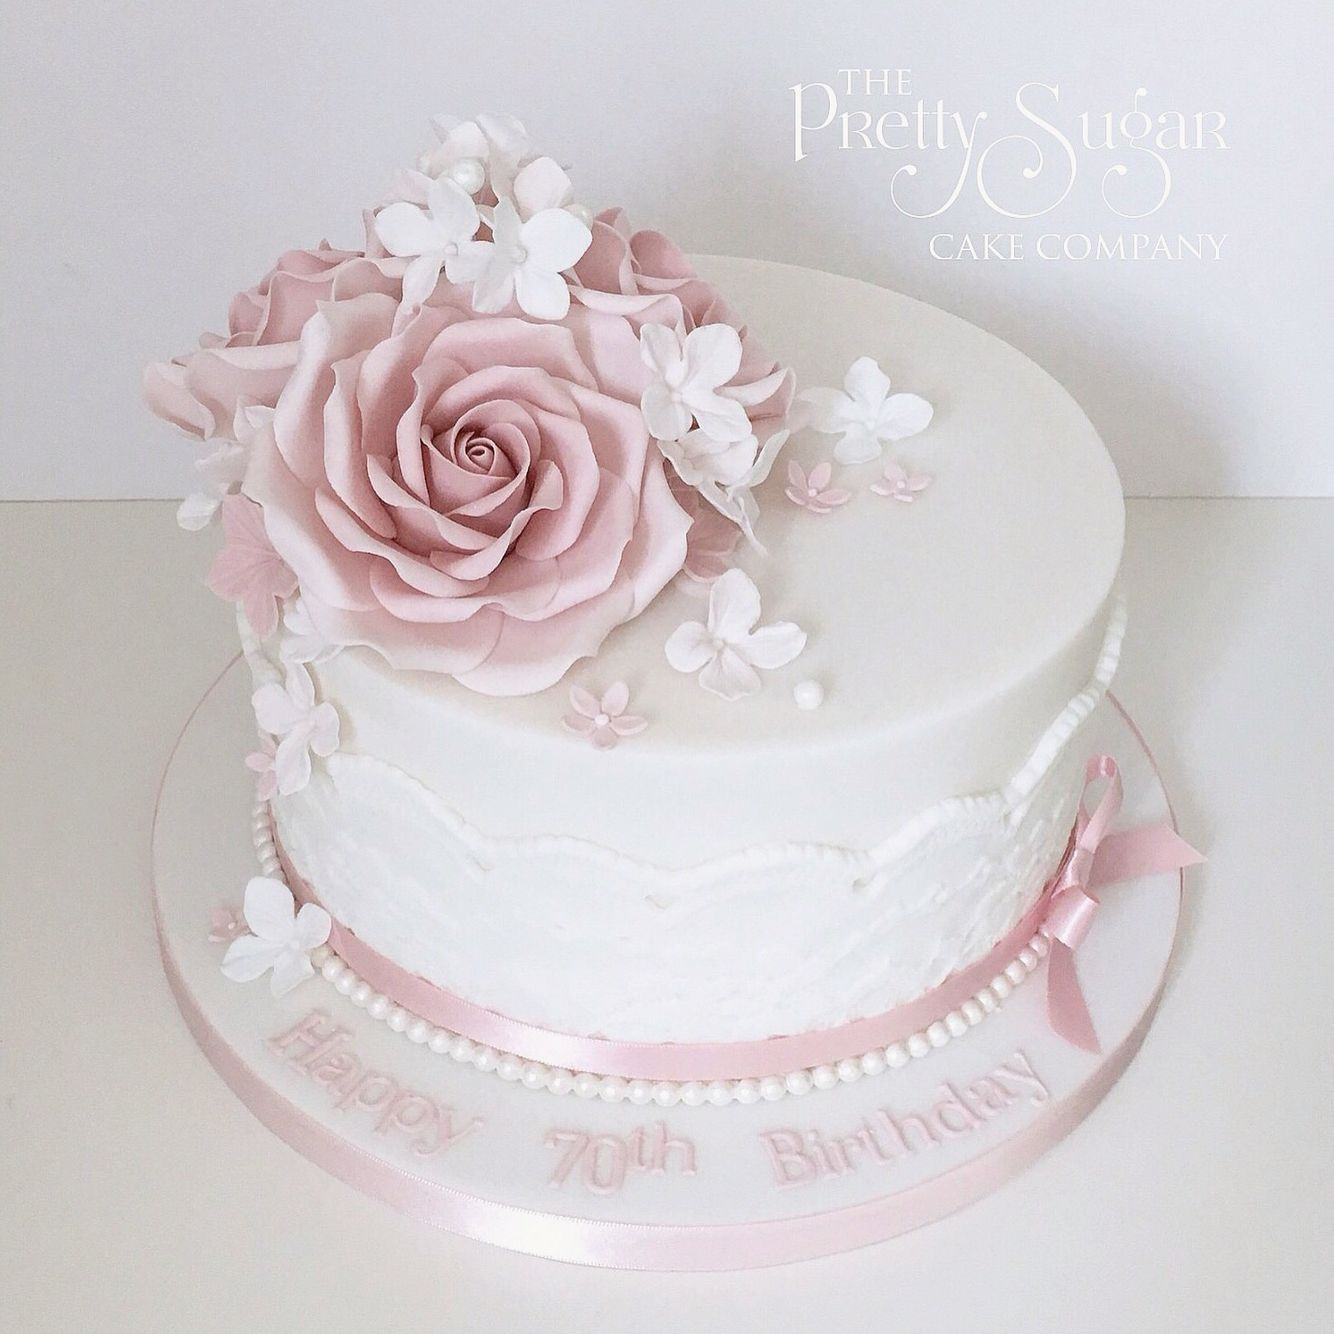 Vintage Style 70th Birthday Cake In Pink And White With